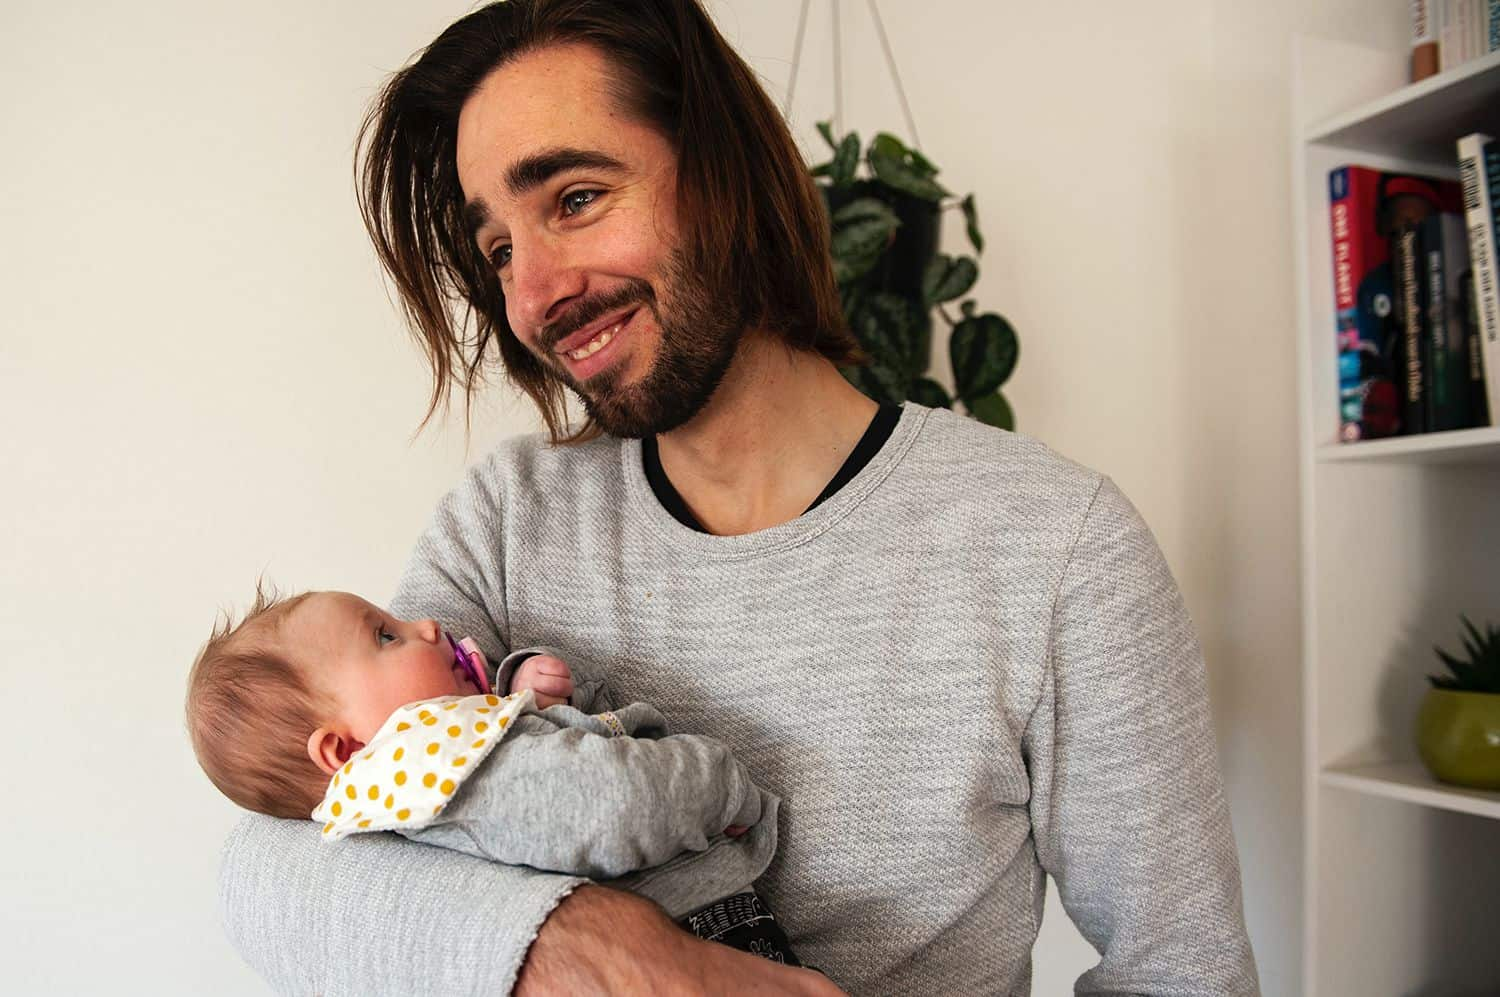 A dad smiles while holding his young baby who is sucking on a pacifier